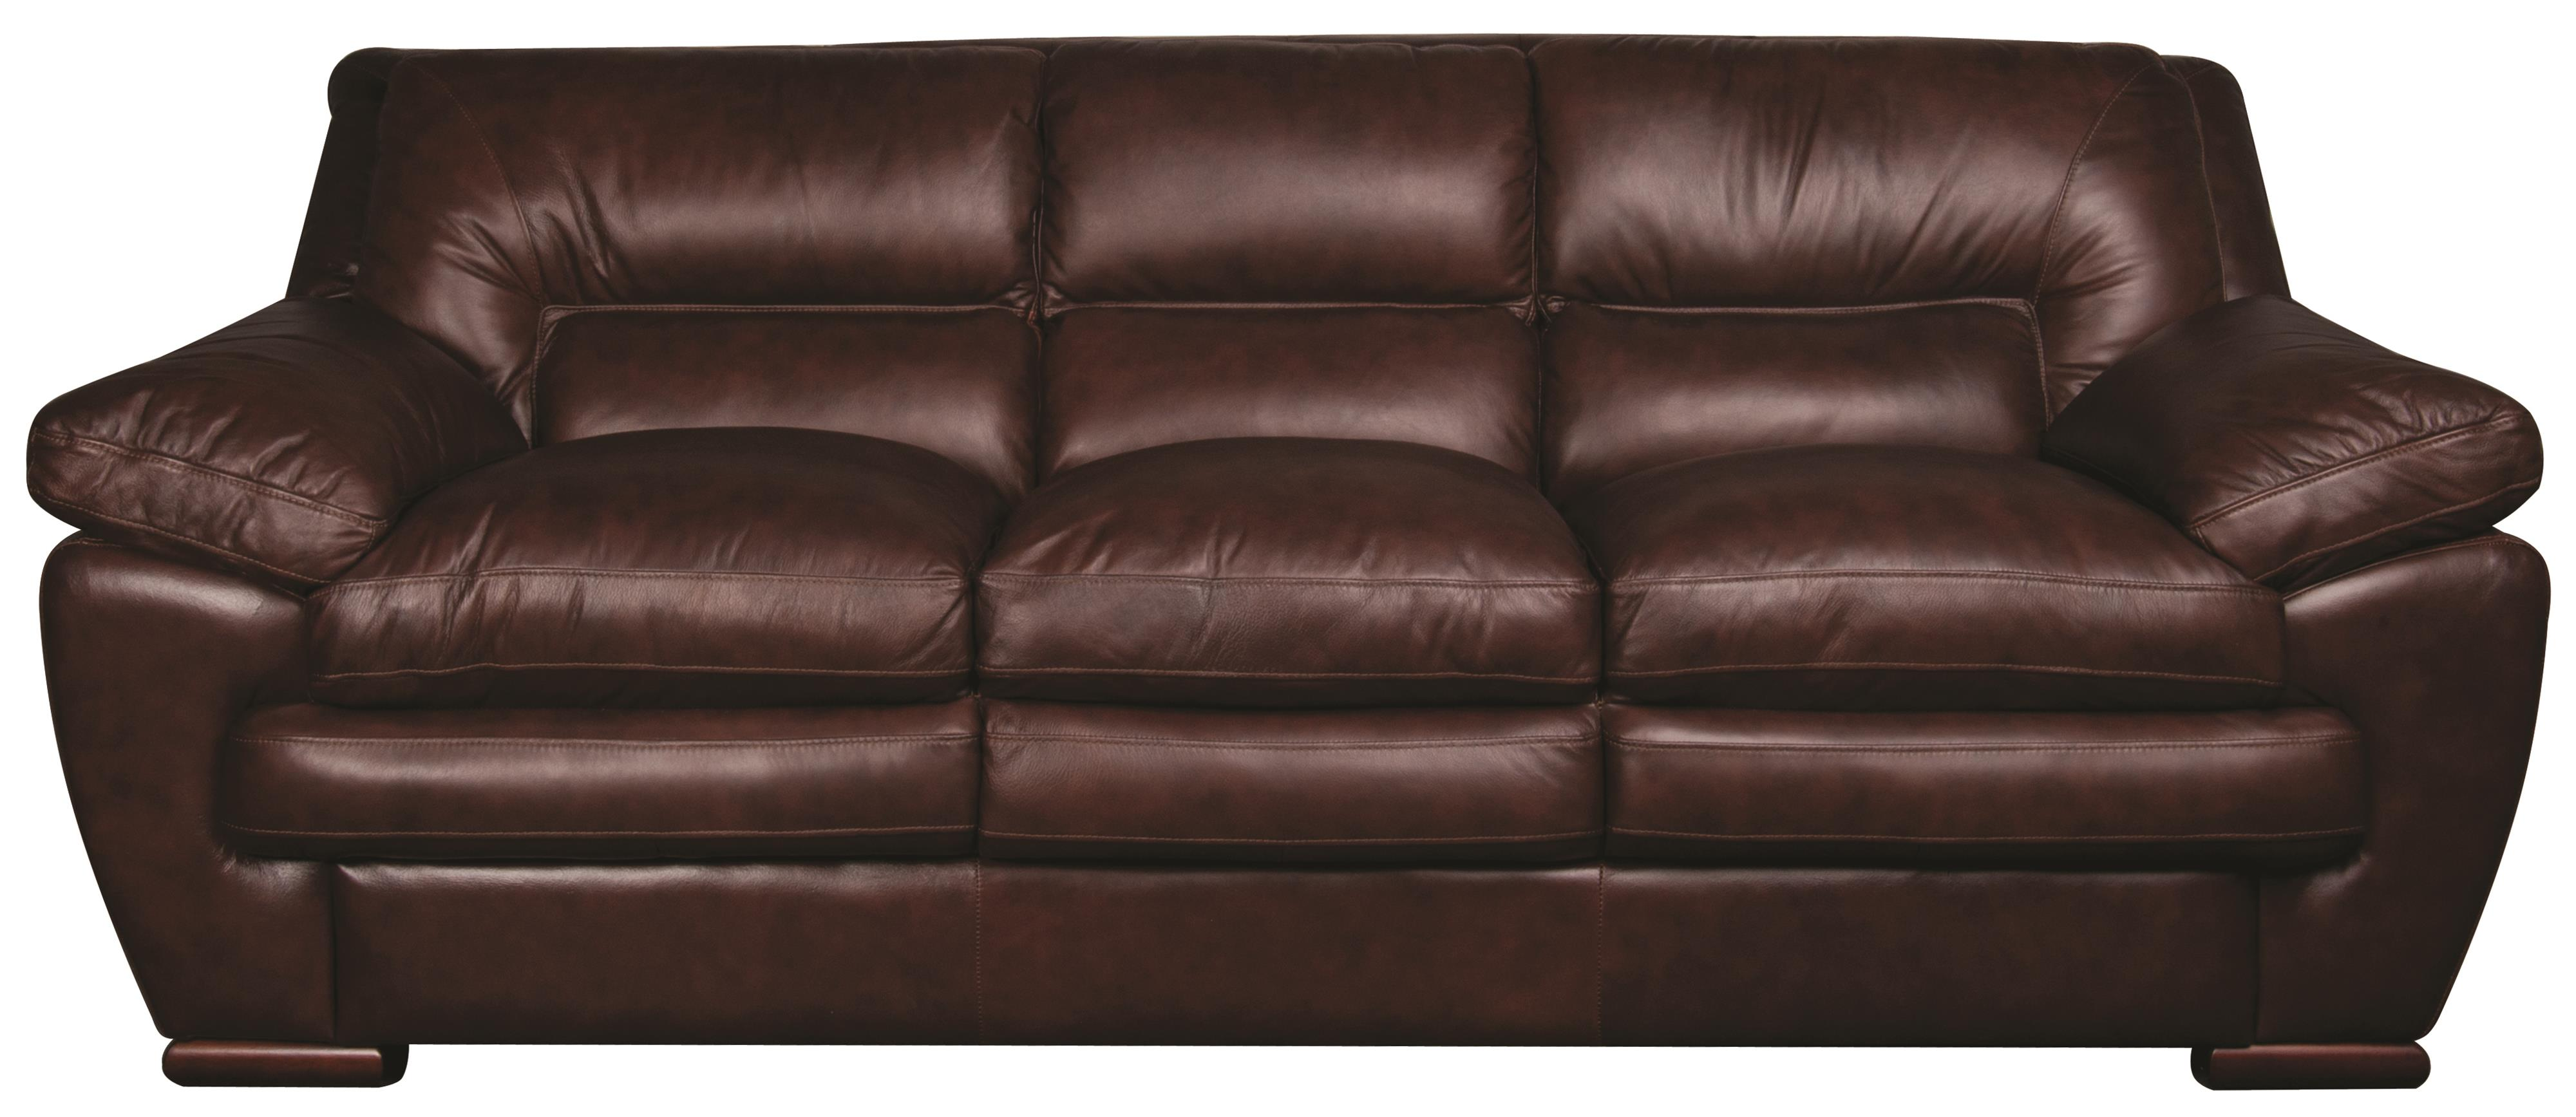 100 genuine leather sofa section sofas baron chair by italia top